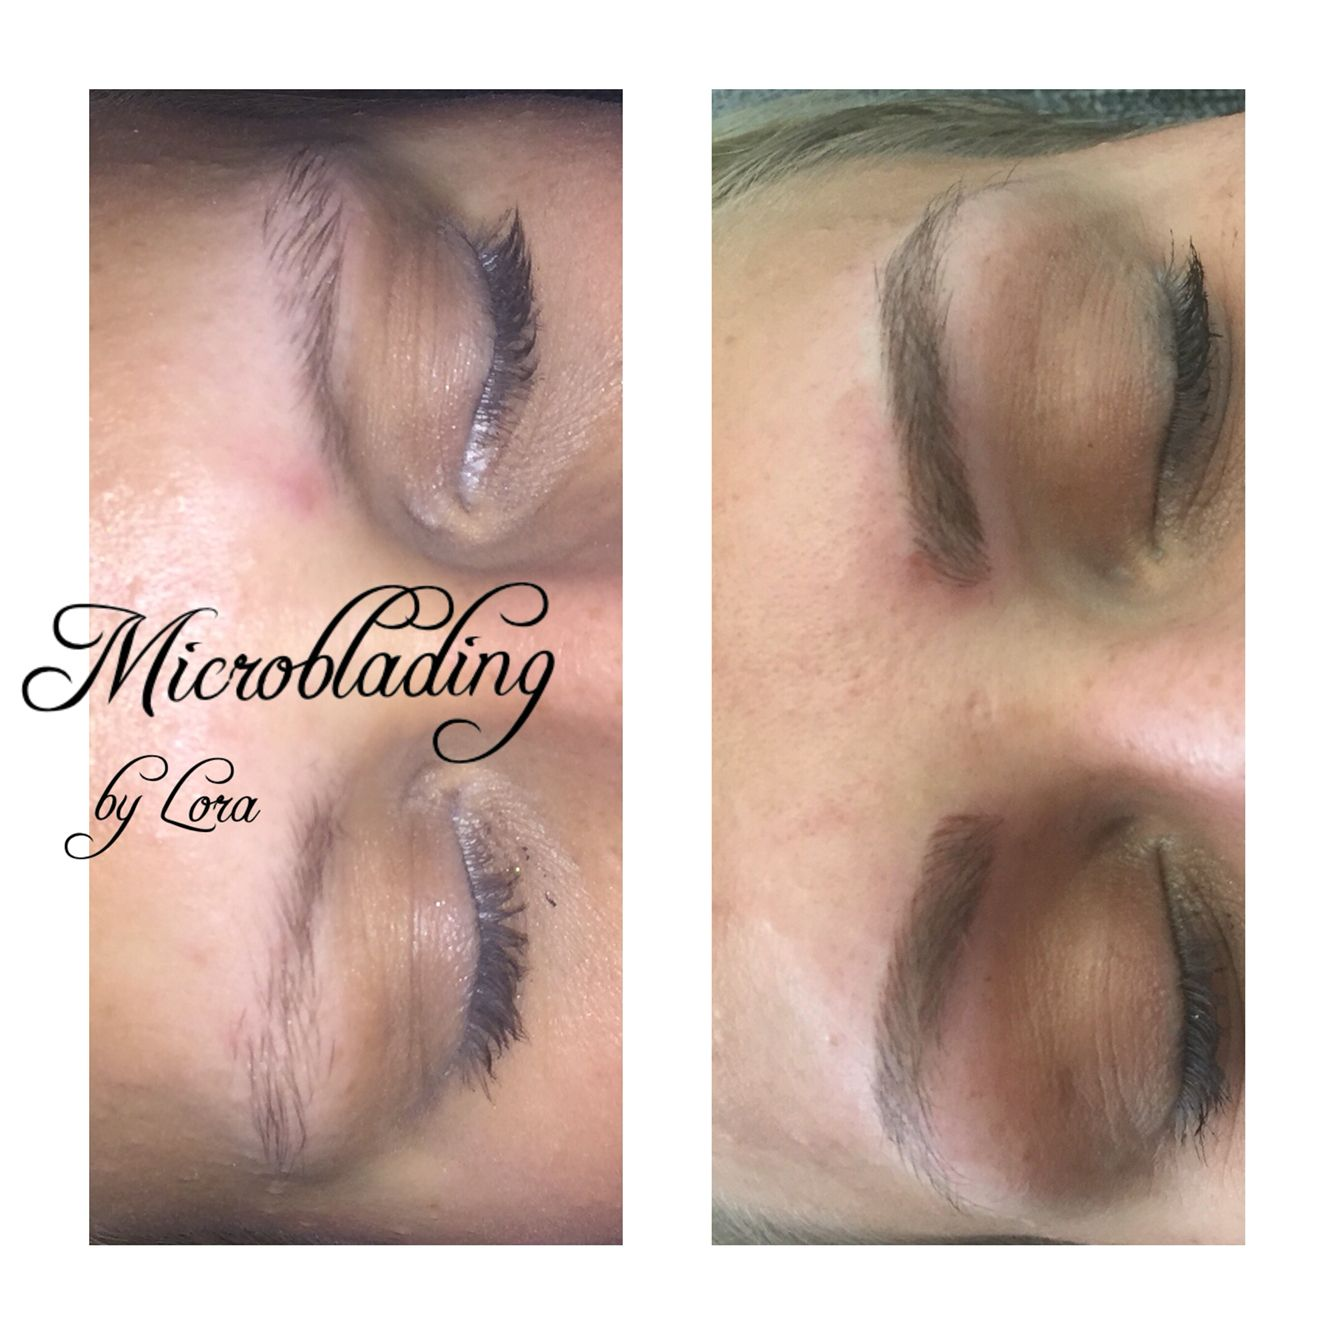 Microblading By Lora Haar Nagelboutique Augenbrauenkorrektur Augenbrauen Microblading Erlangen Nurnberg Behind Ear Tattoo Microblading Ear Tattoo